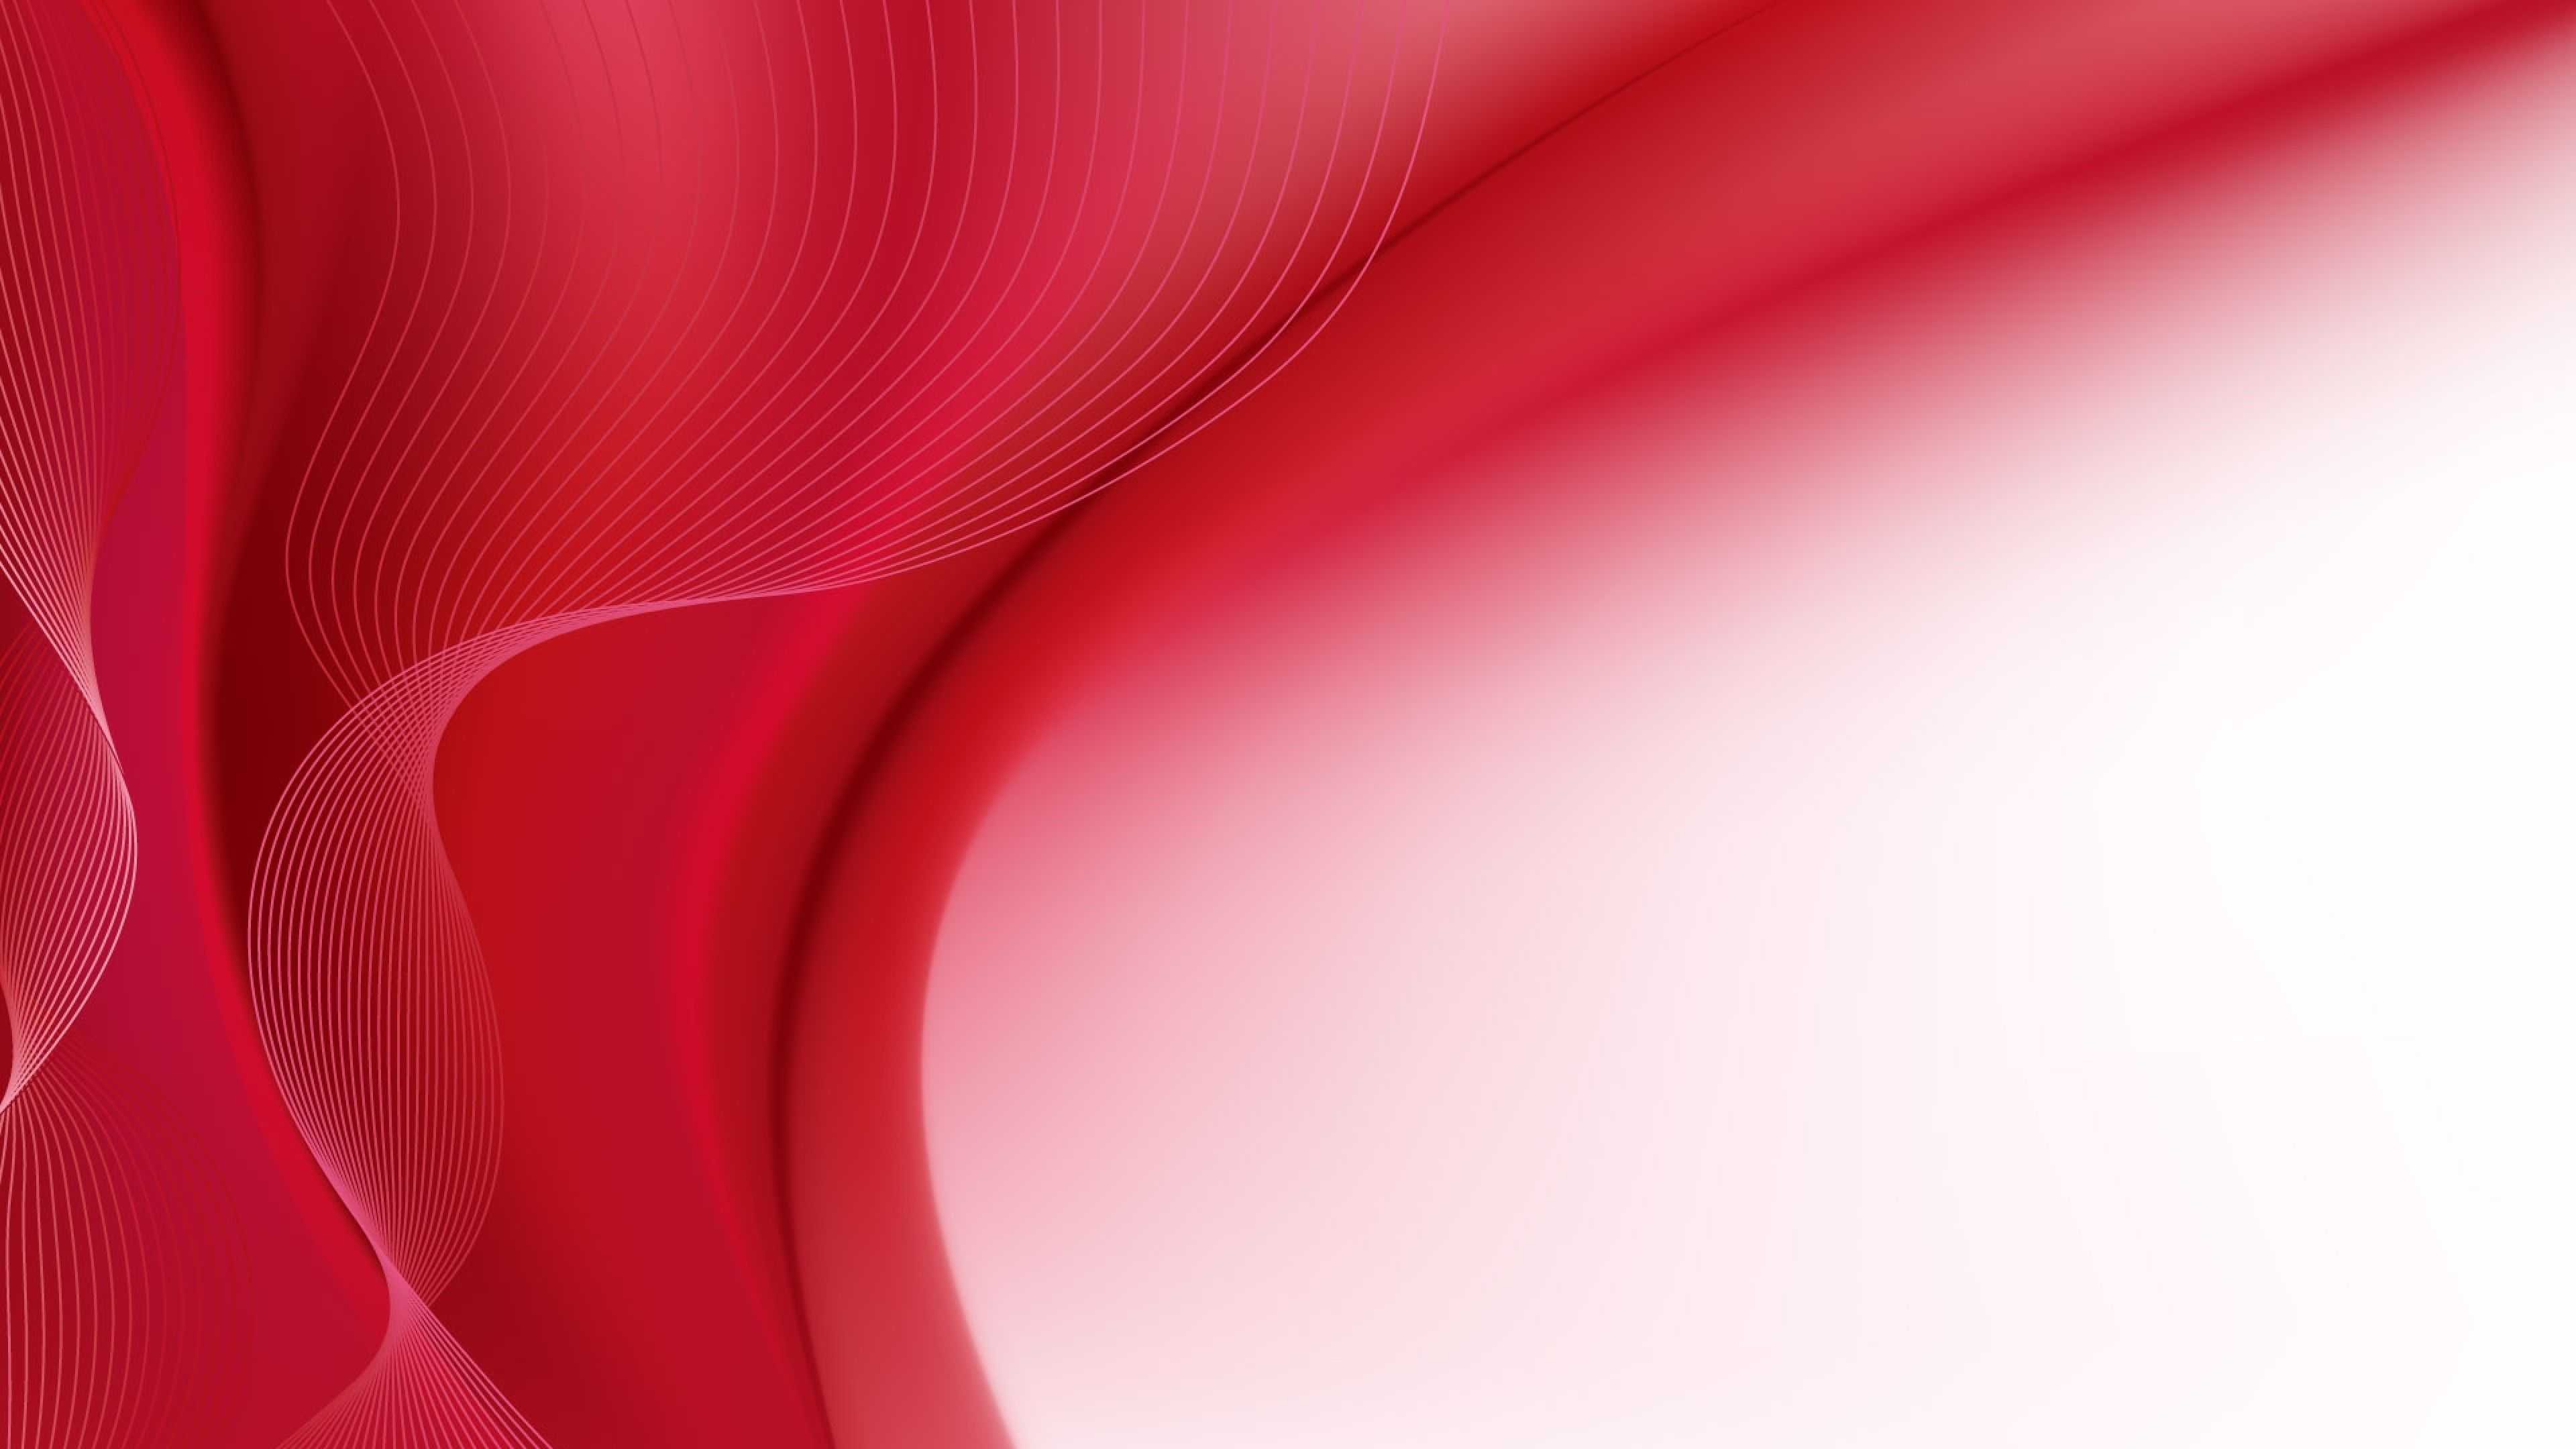 Are You Searching For Red And White Abstract Wallpaper Below Are 10 Top And Most Recent Red A Red And White Wallpaper White Background Wallpaper Red Wallpaper